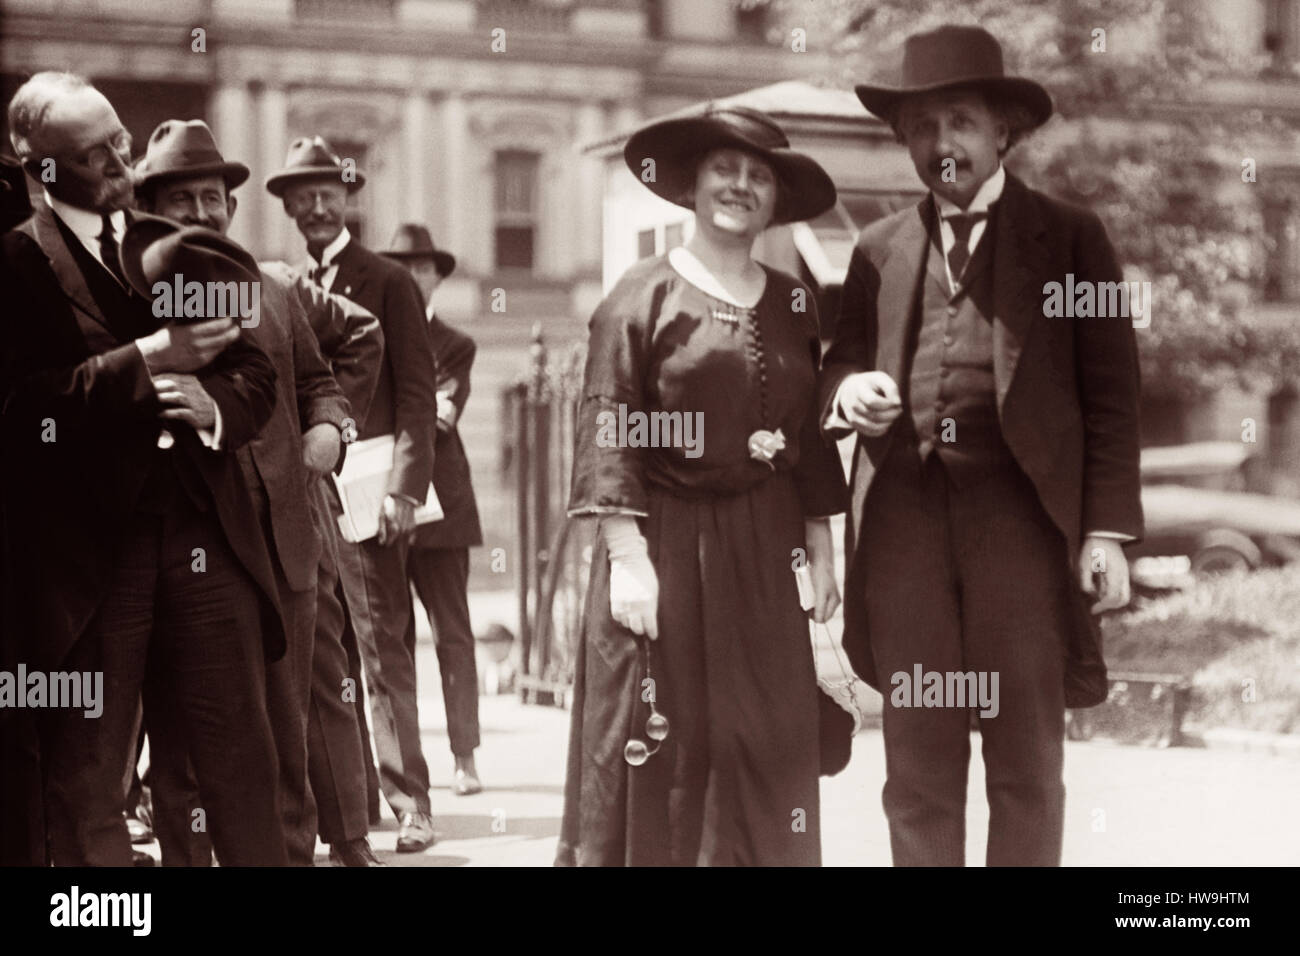 Albert Einstein and wife Elsa in front of the State, War, and Navy building in Washington, D.C. during their 1921 - Stock Image